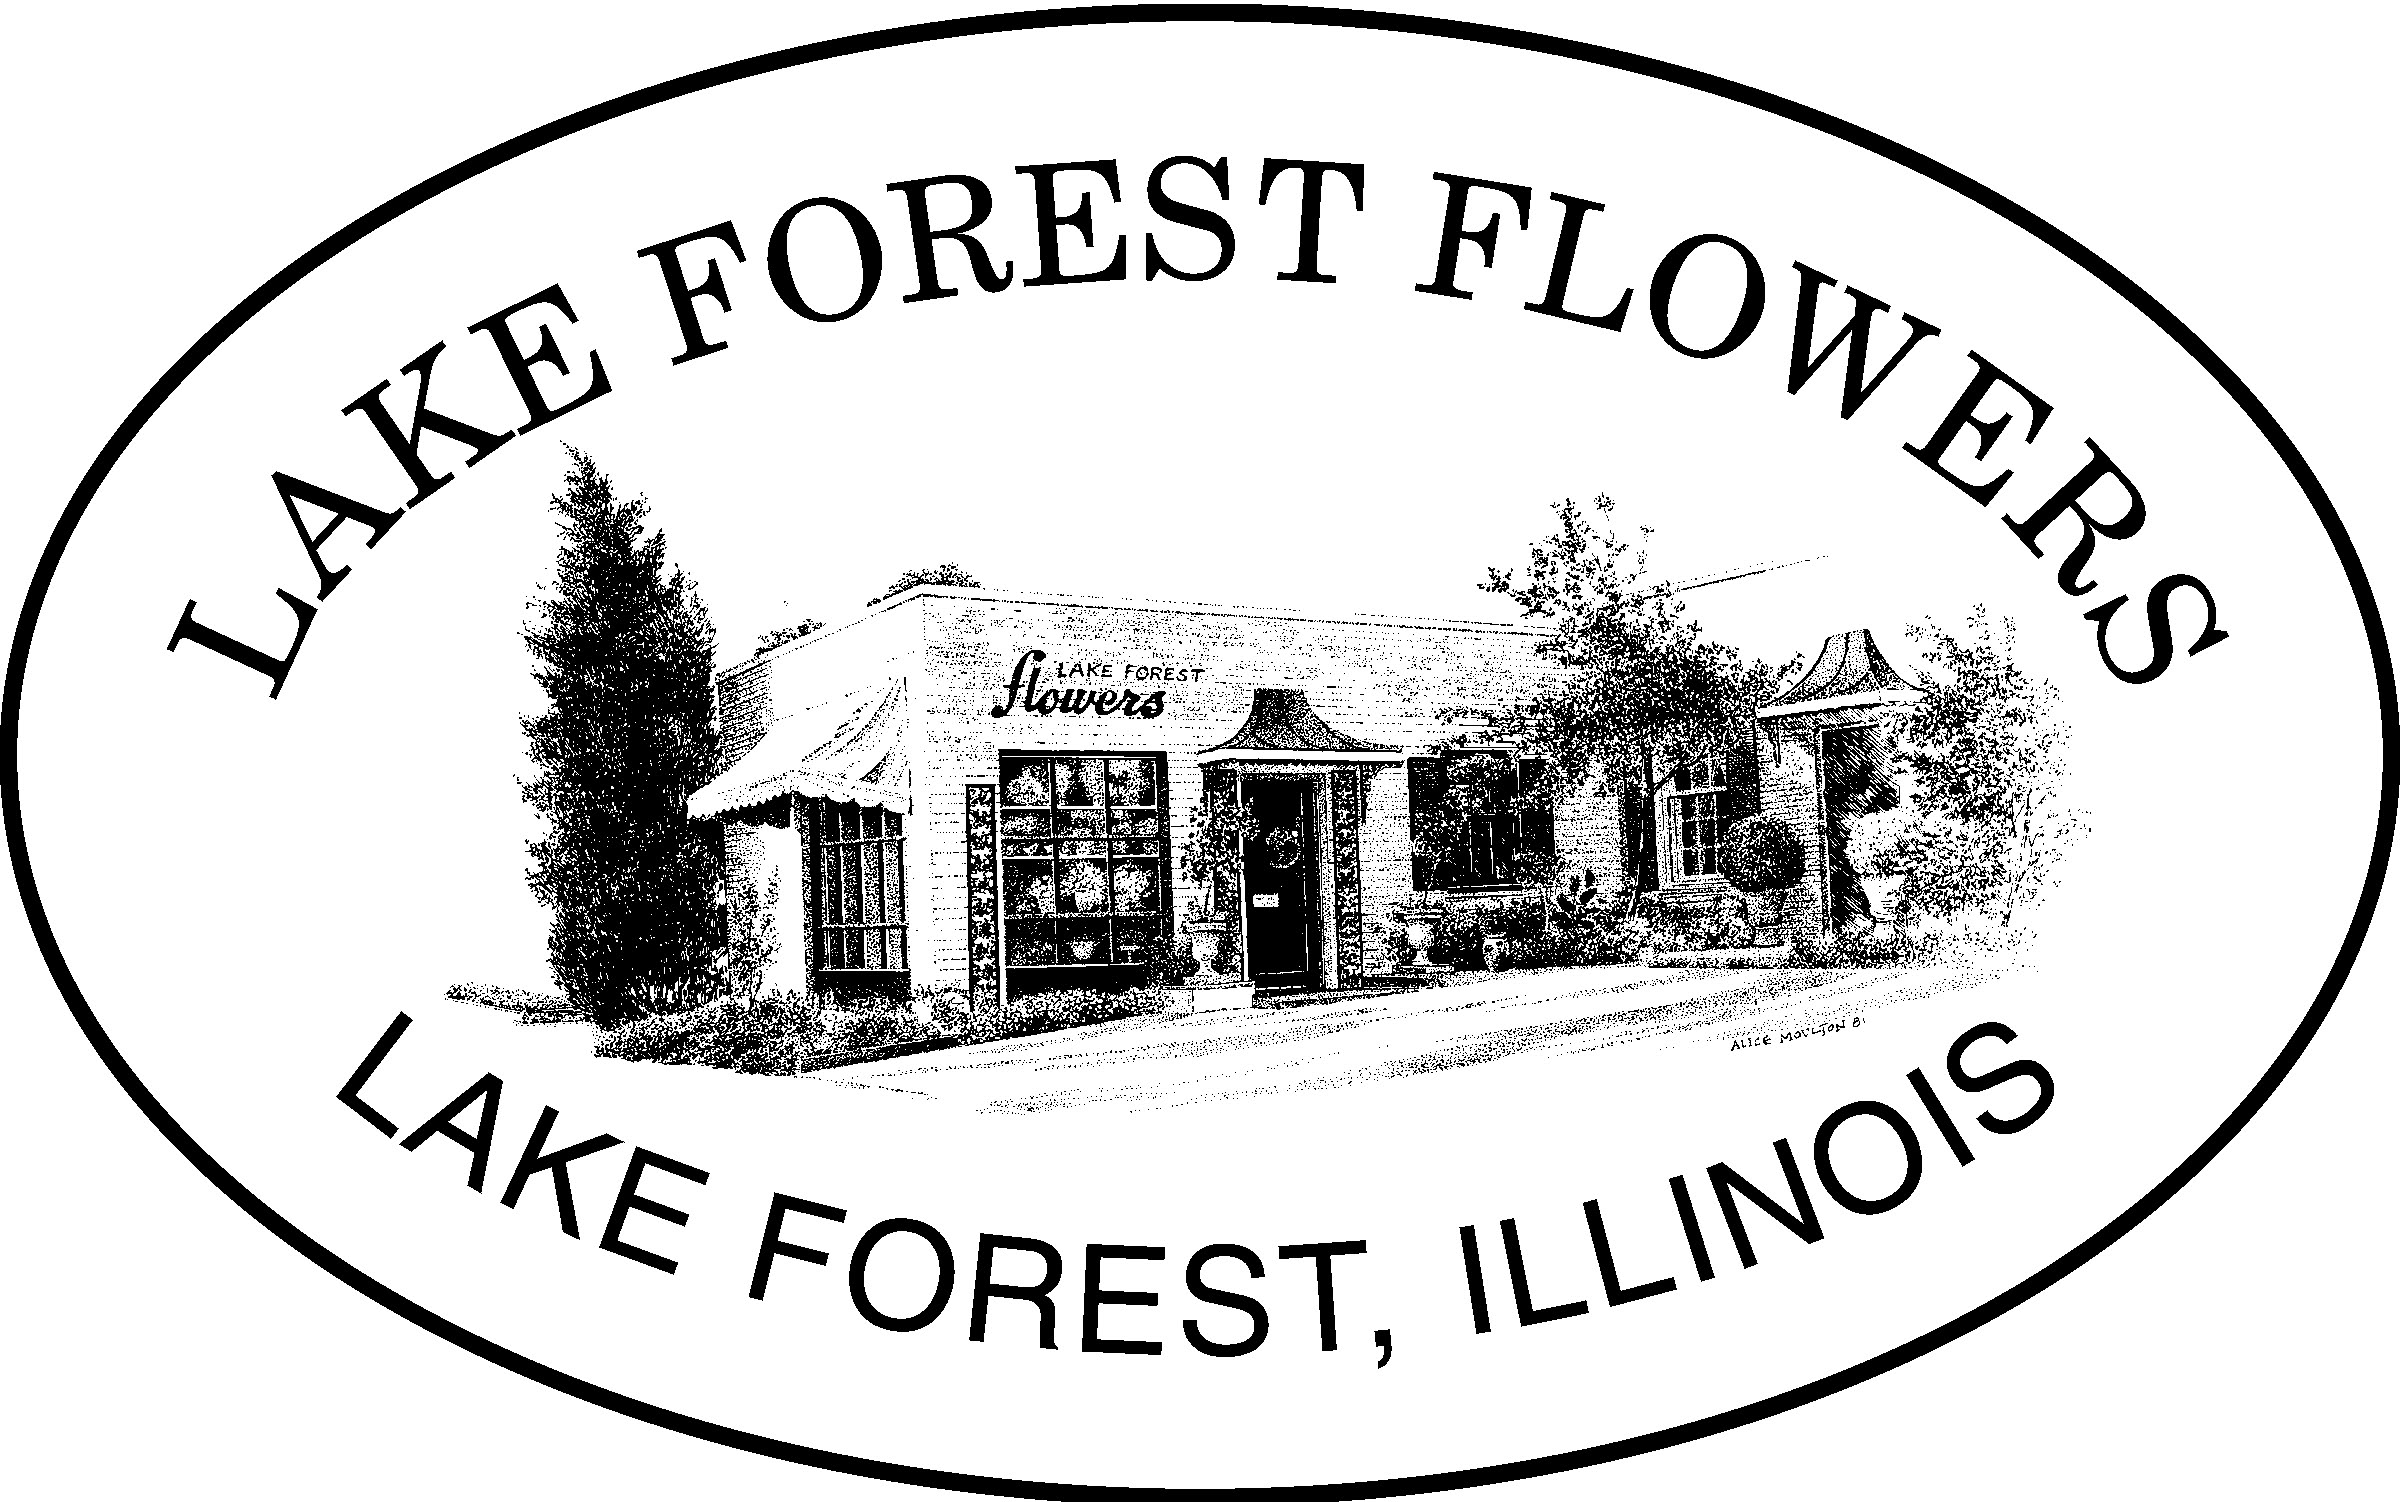 Lake Forest Flowers logo